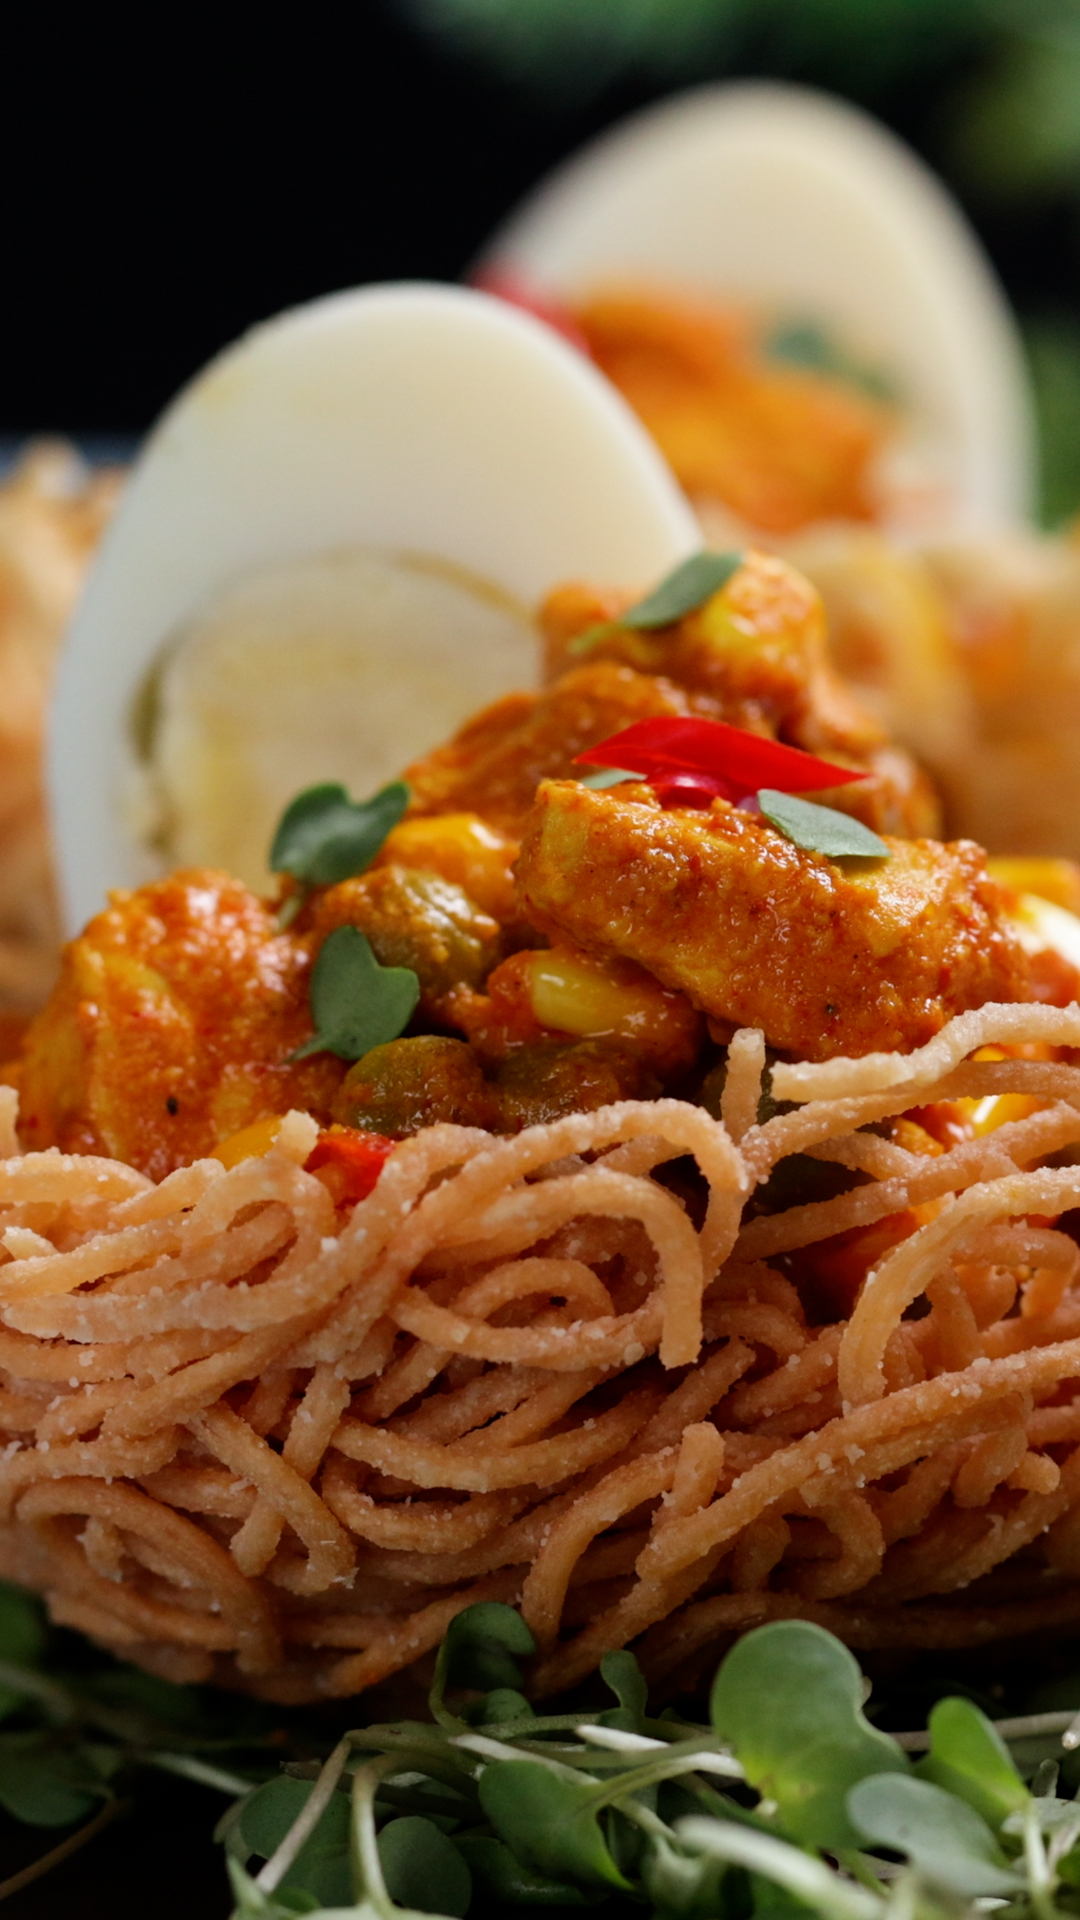 Fried Noodle Nests with Indian Chicken Gravy